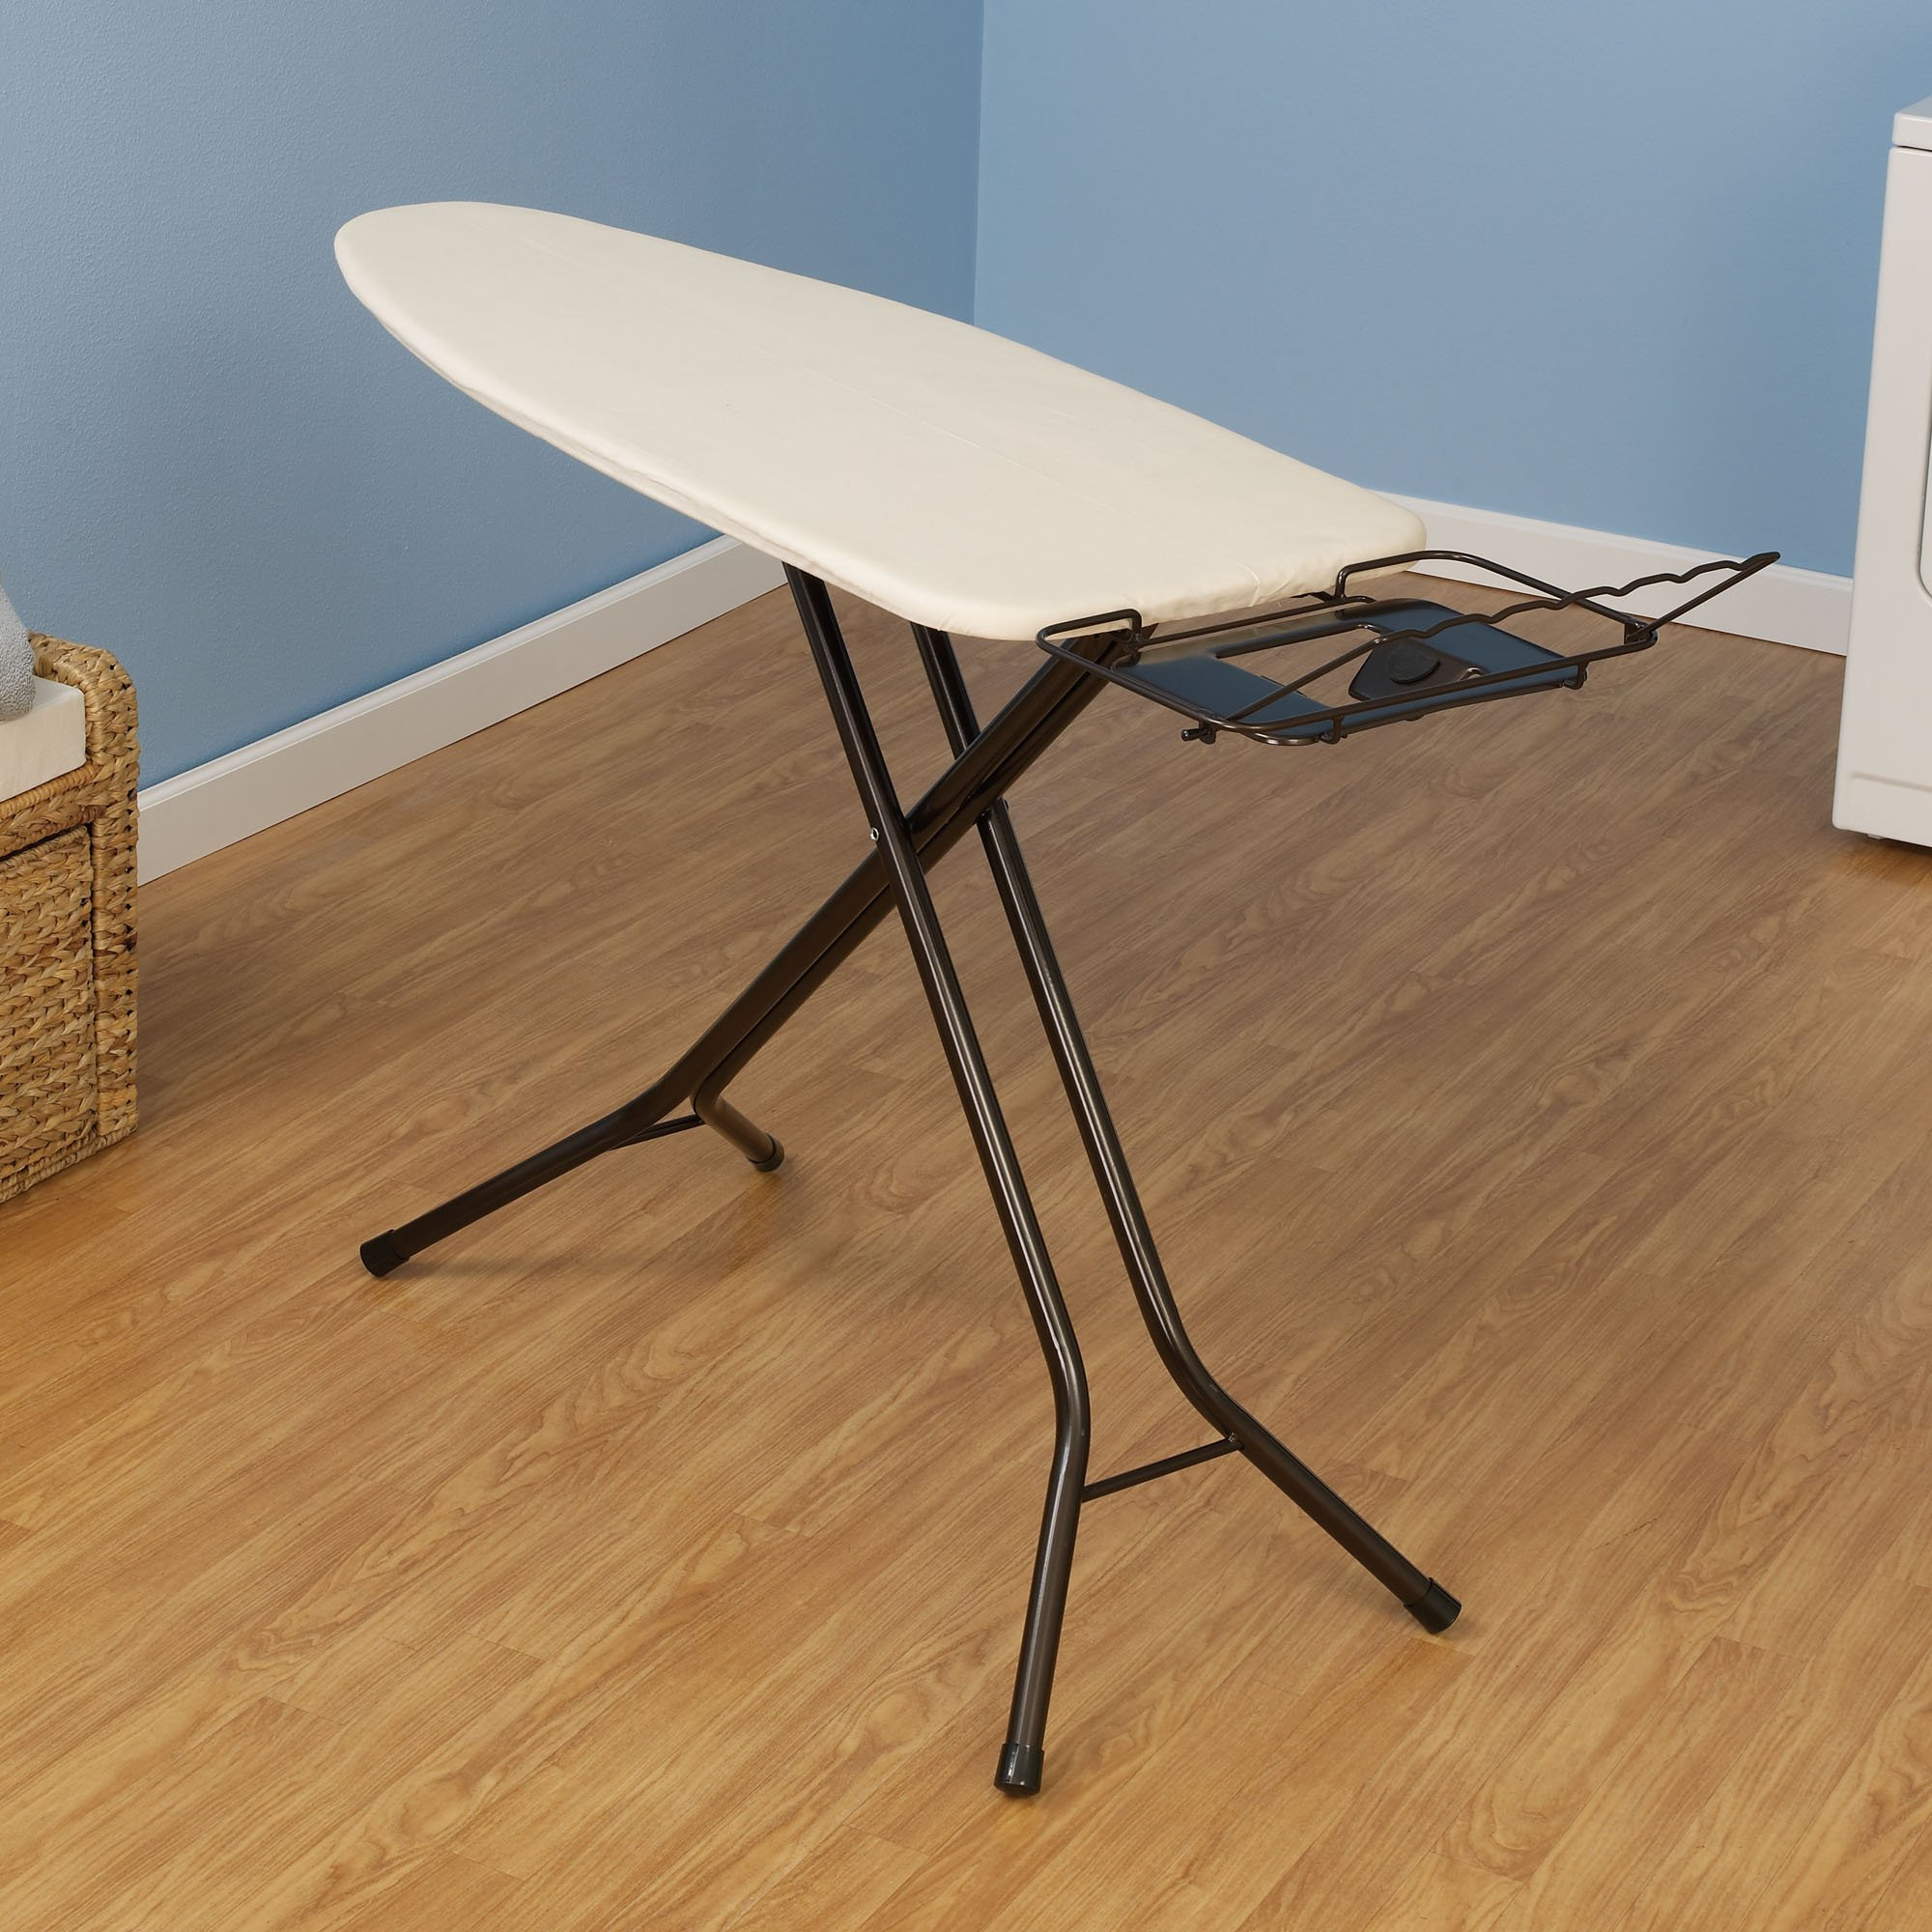 Household Essentials 974406-1 Extra Wide Top 4-Leg Large Ironing Board | Natural Cotton Cover and Iron Holder Stand | Bronze by Household Essentials